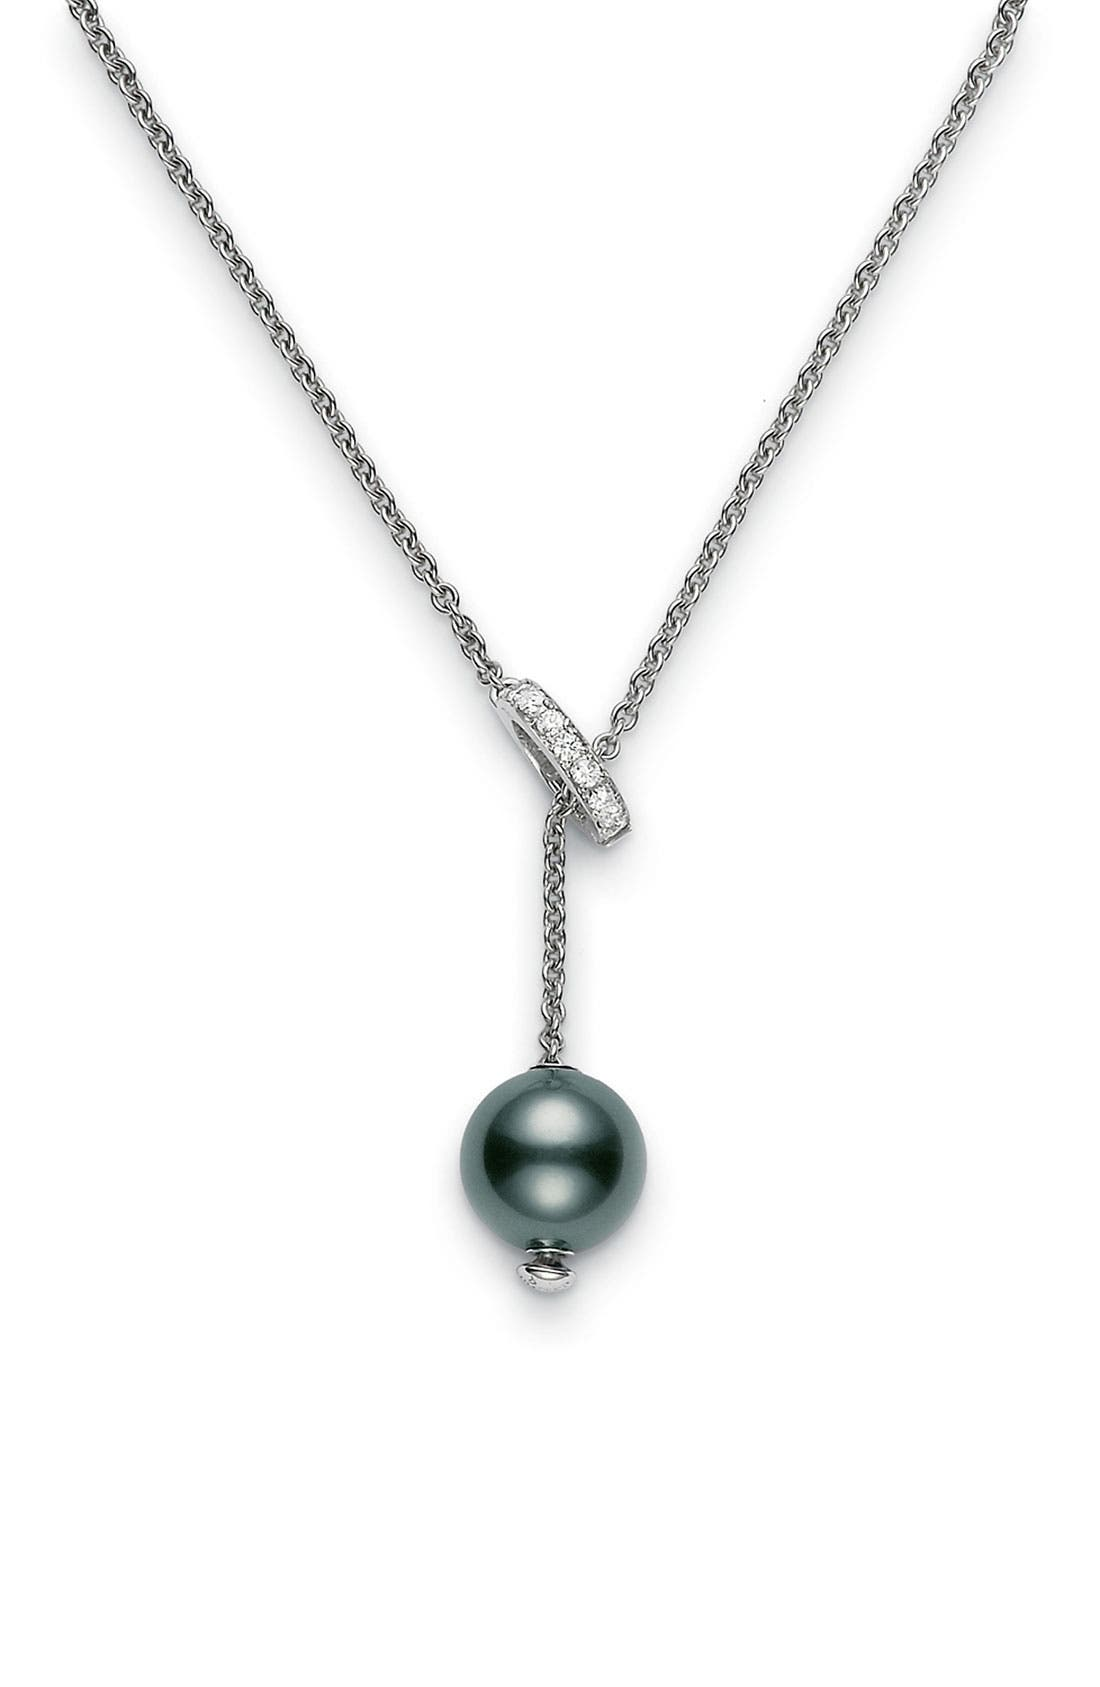 Mikimoto 'Pearls in Motion' Black South Sea Cultured Pearl & Diamond Necklace